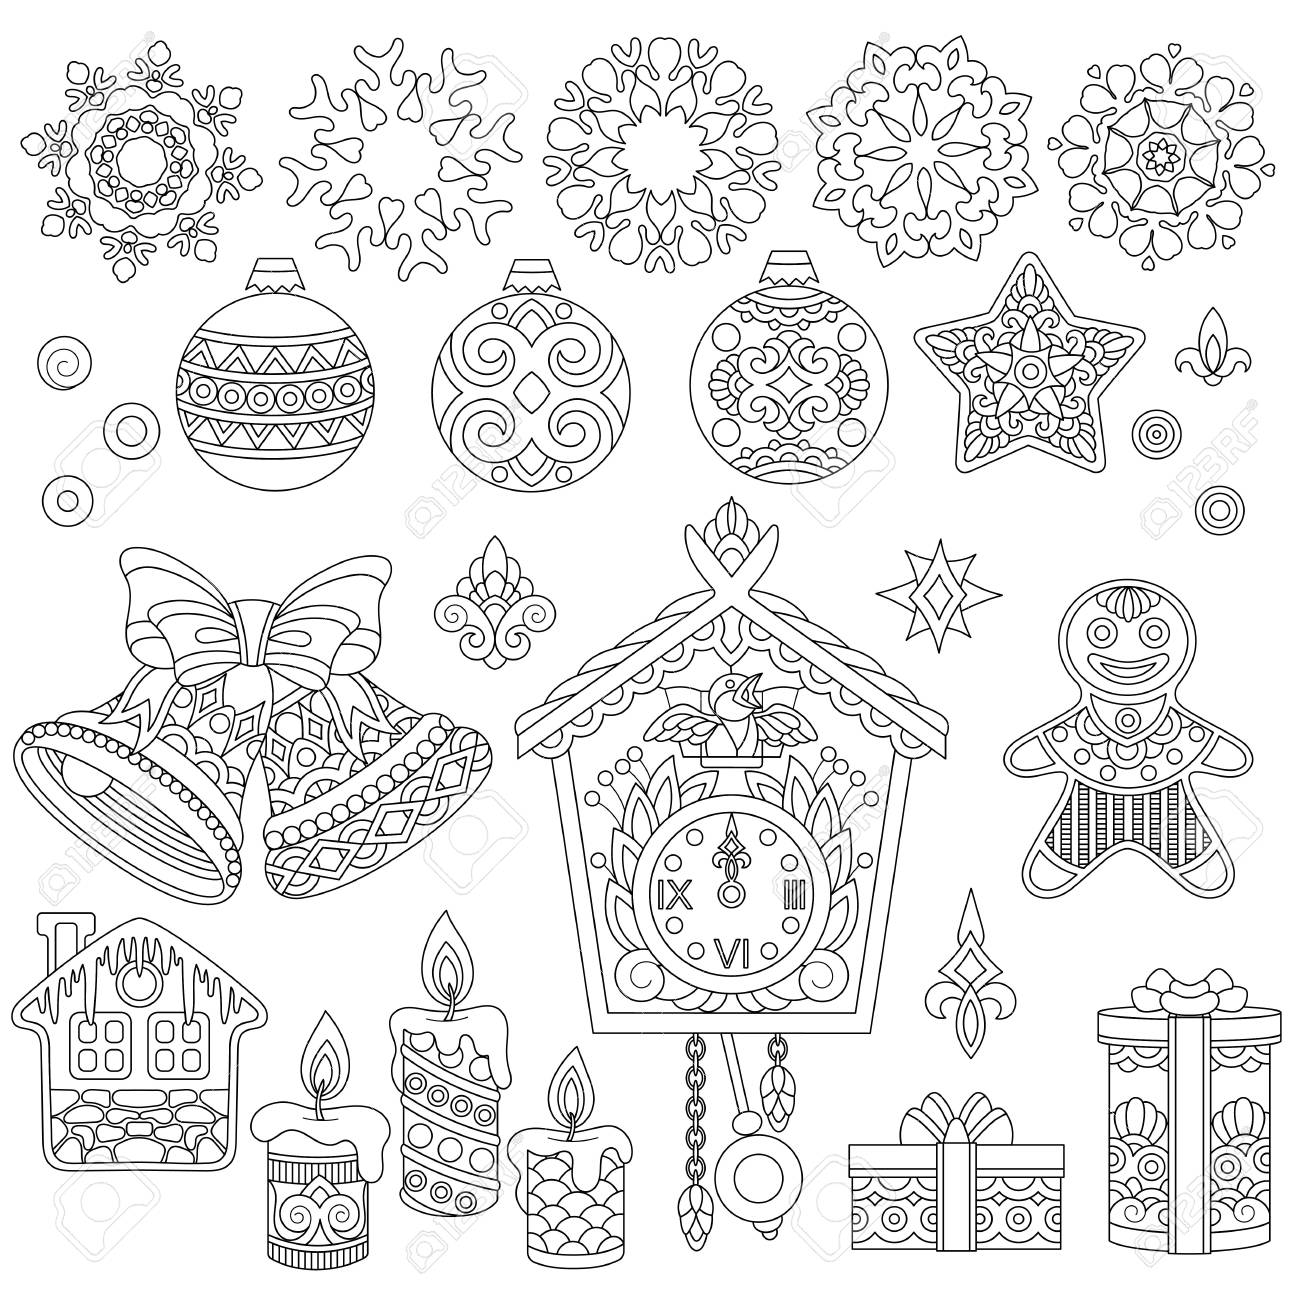 Christmas Doodle Ornaments Coloring Page With Collection Of Holiday Decorations For 2018 Happy New Year